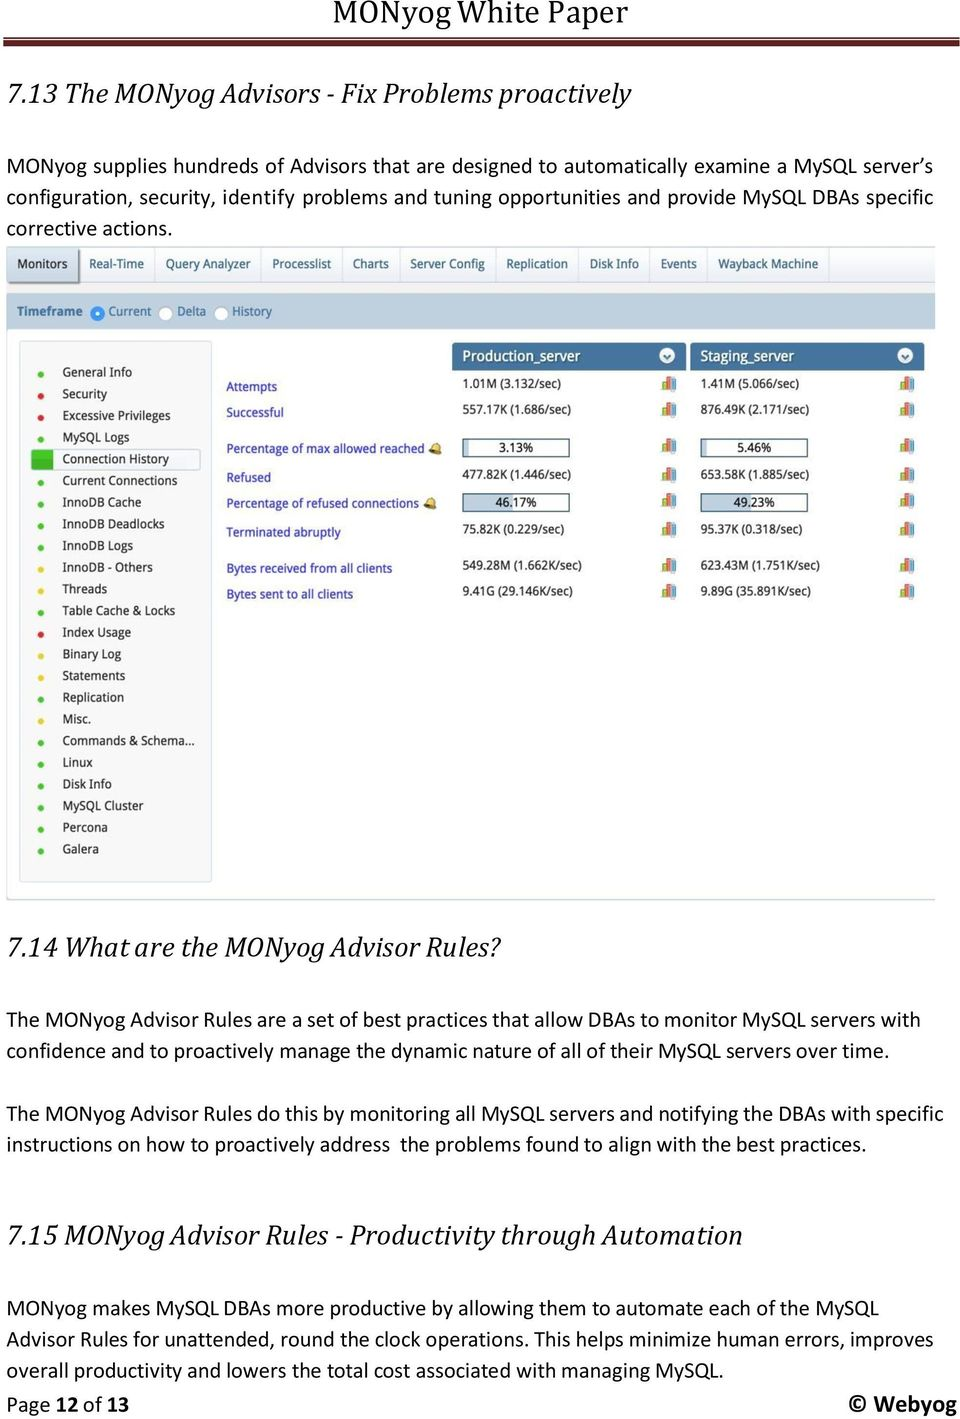 The MONyog Advisor Rules are a set of best practices that allow DBAs to monitor MySQL servers with confidence and to proactively manage the dynamic nature of all of their MySQL servers over time.